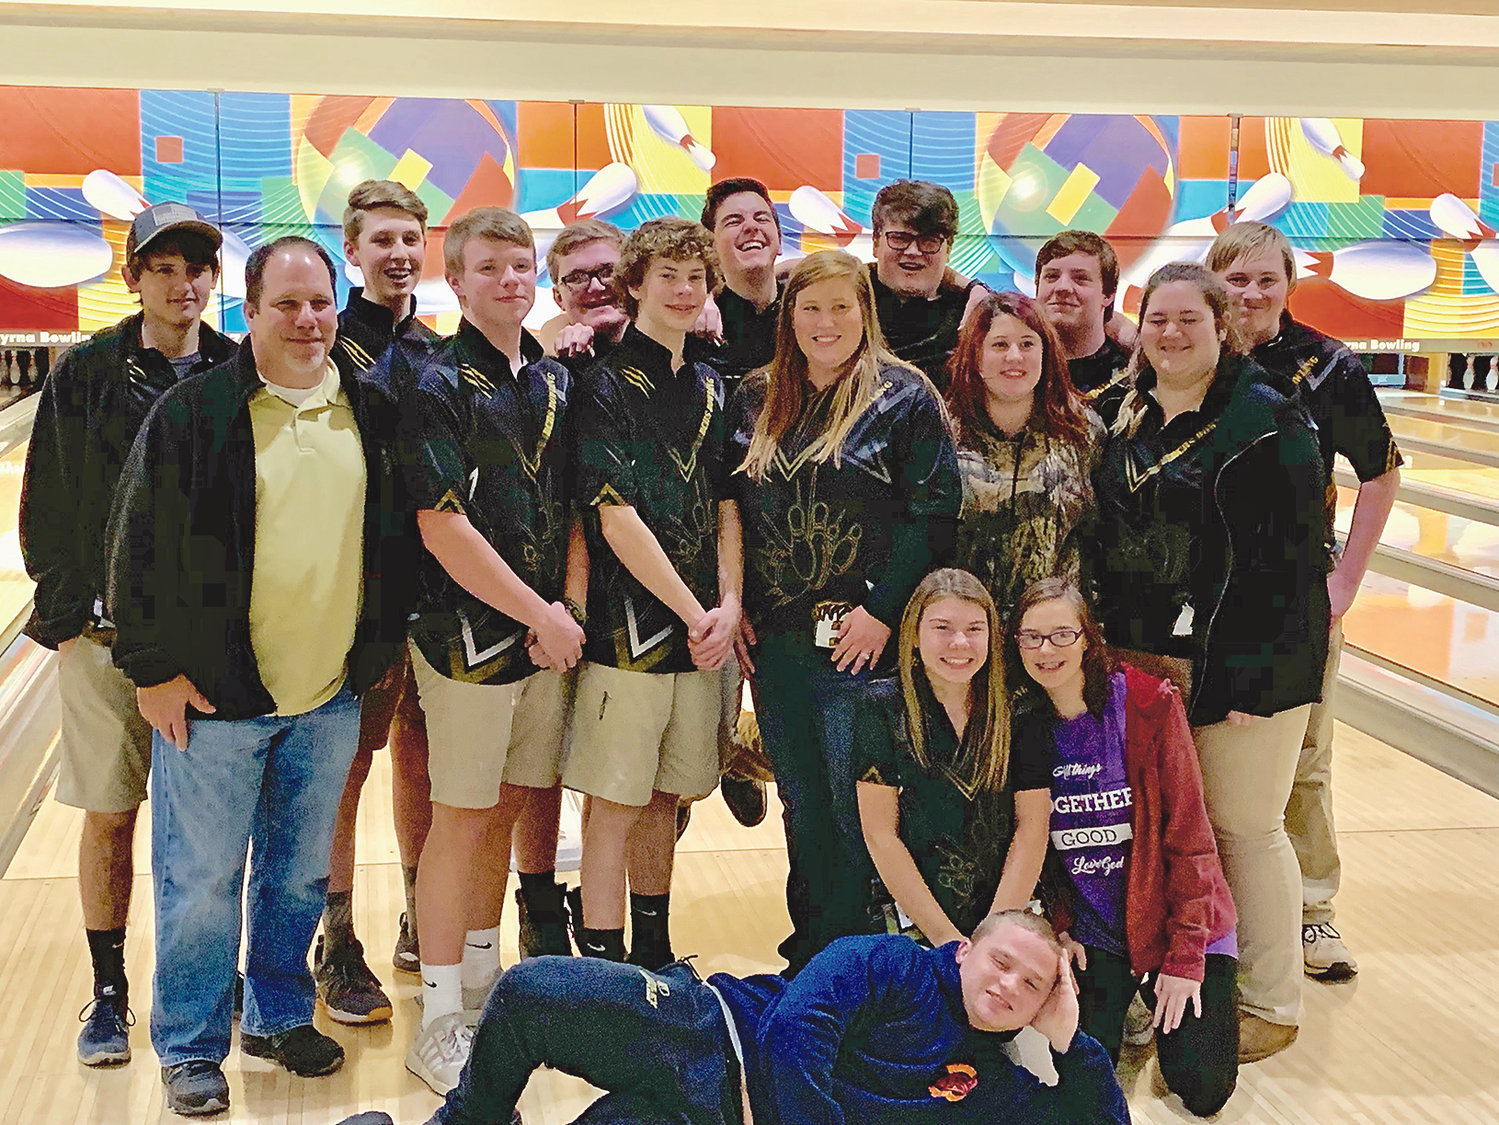 BRADLEY CENTRAL'S bowling teams made the trek to Smyrna together on Saturday, to play in the TSSAA Sectional playoffs. The Bears wrapped up a 20-2 season while the Bearettes finished 10-8.